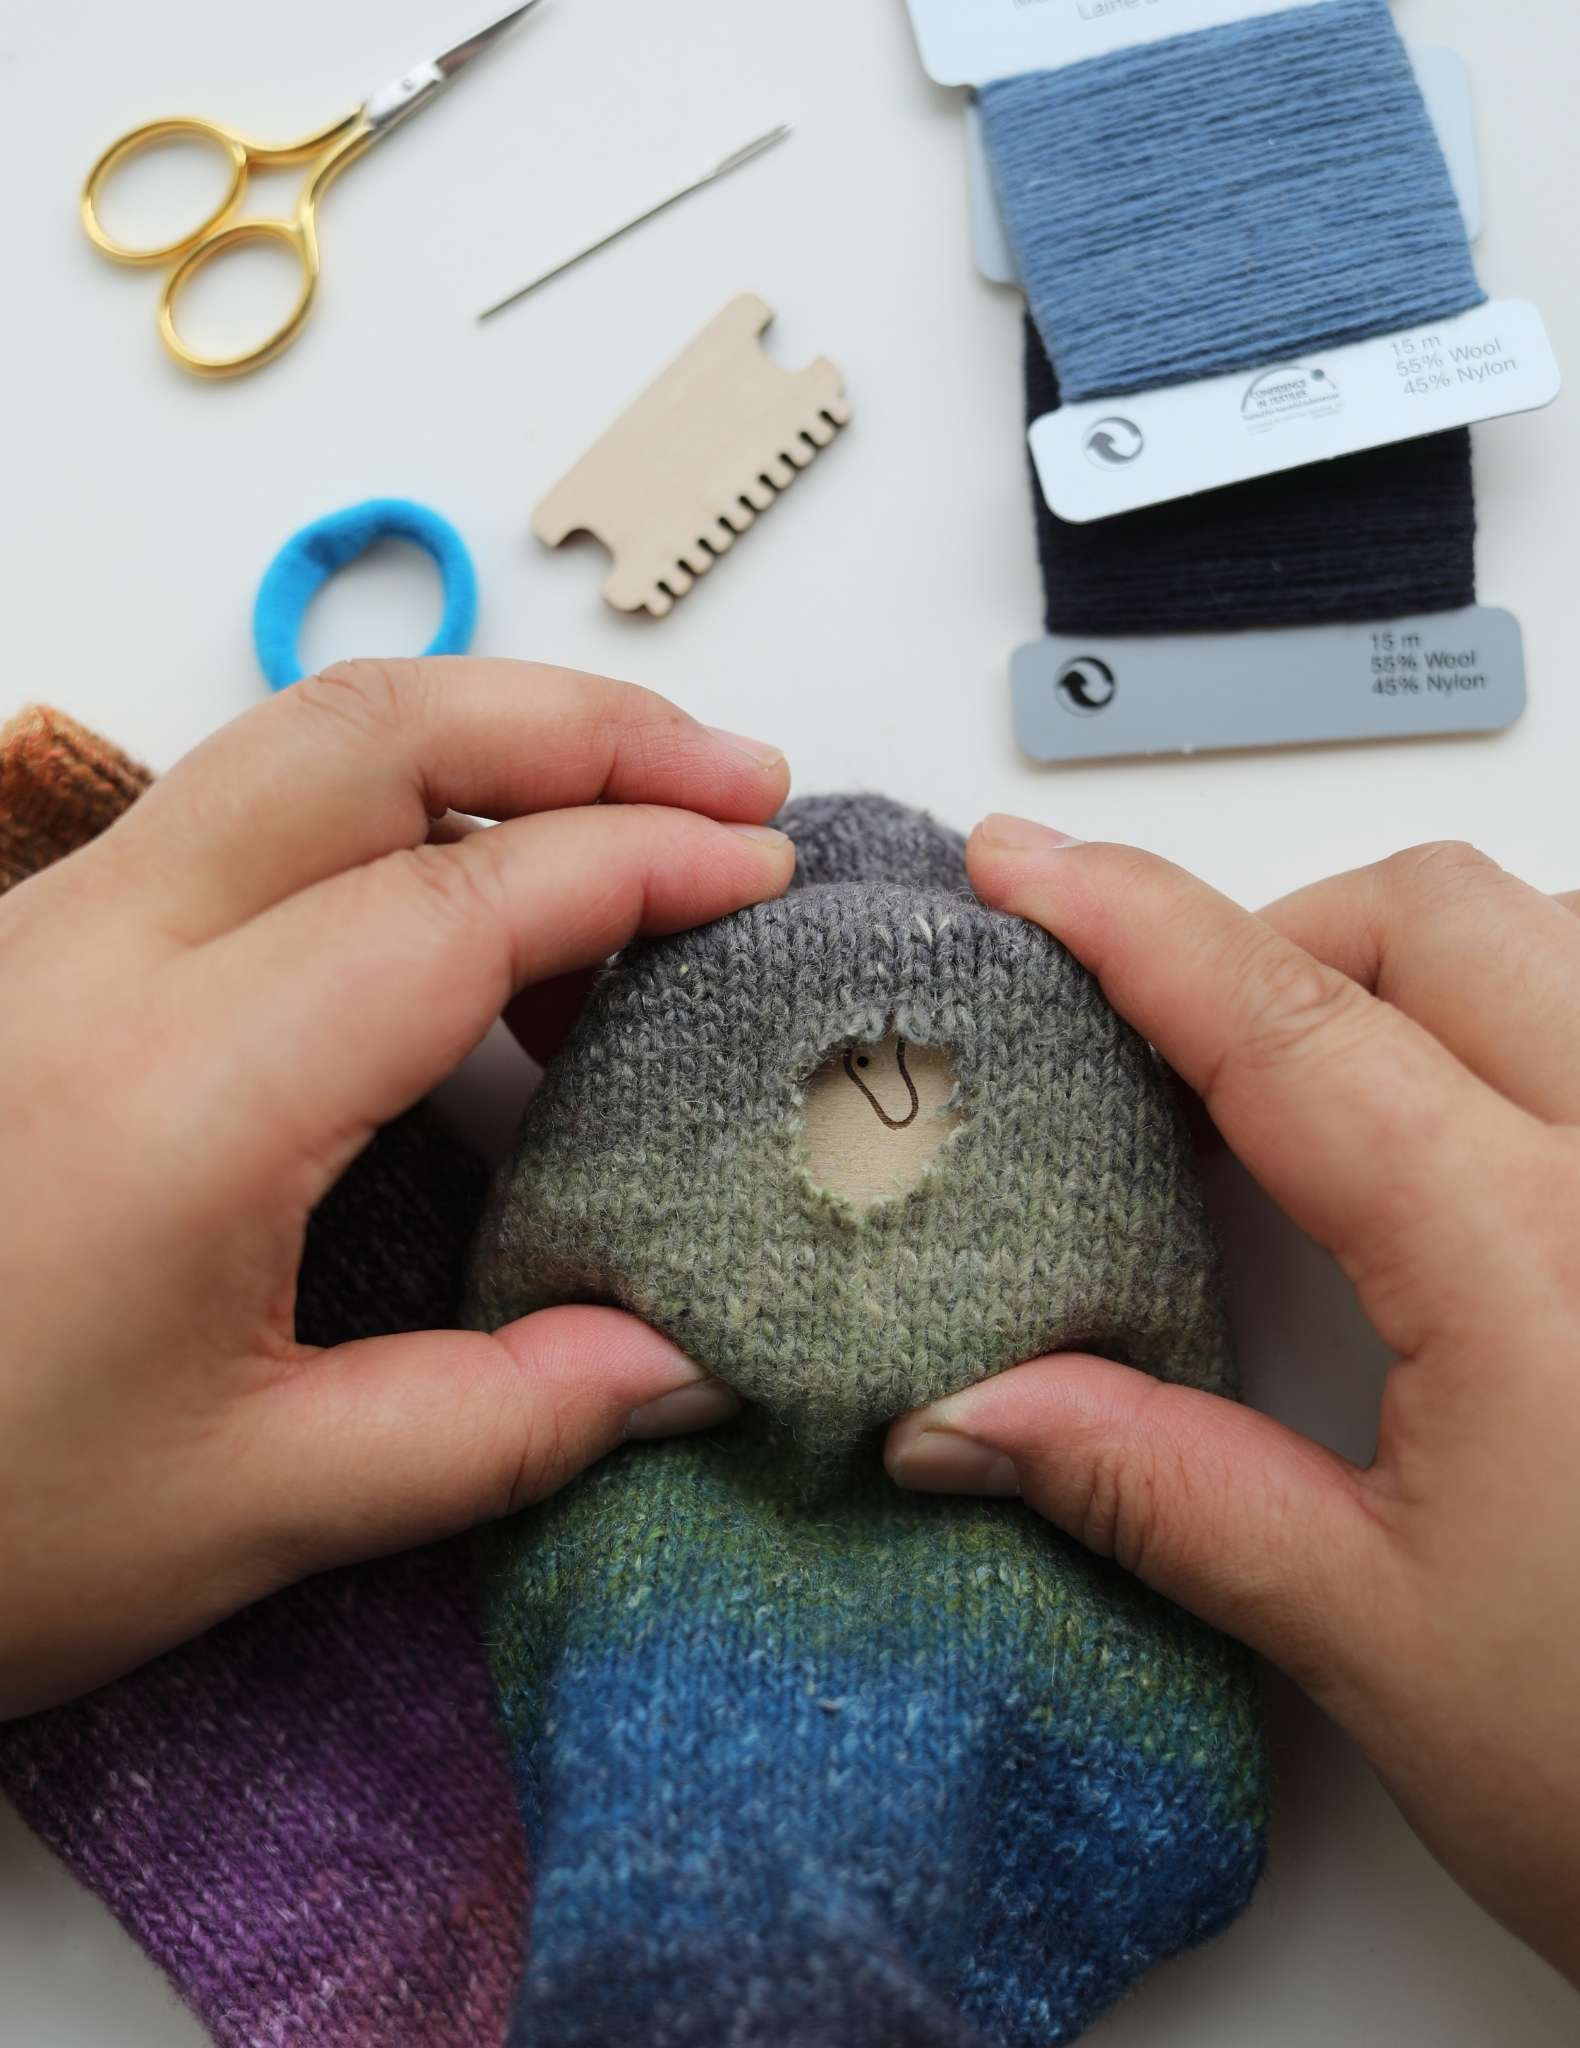 Hands hold a striped sock, with the hole showing between them. Inside the sock and underneath the hole is a wooden darning loom, with the wood visible through the hole.